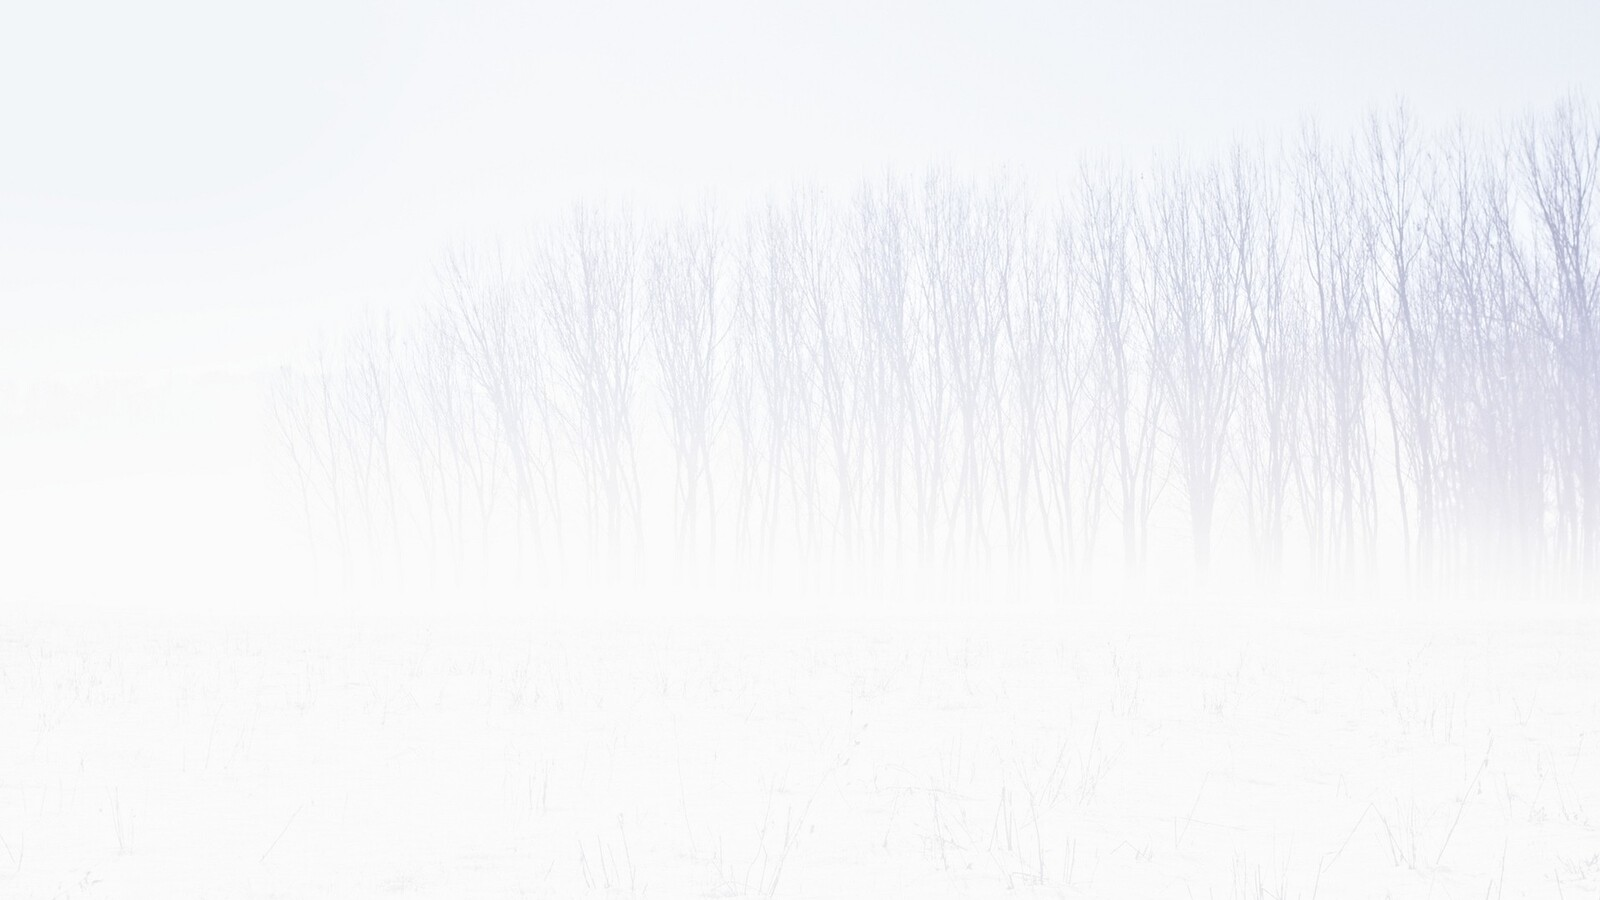 snow-trees-abstract-4k.jpg